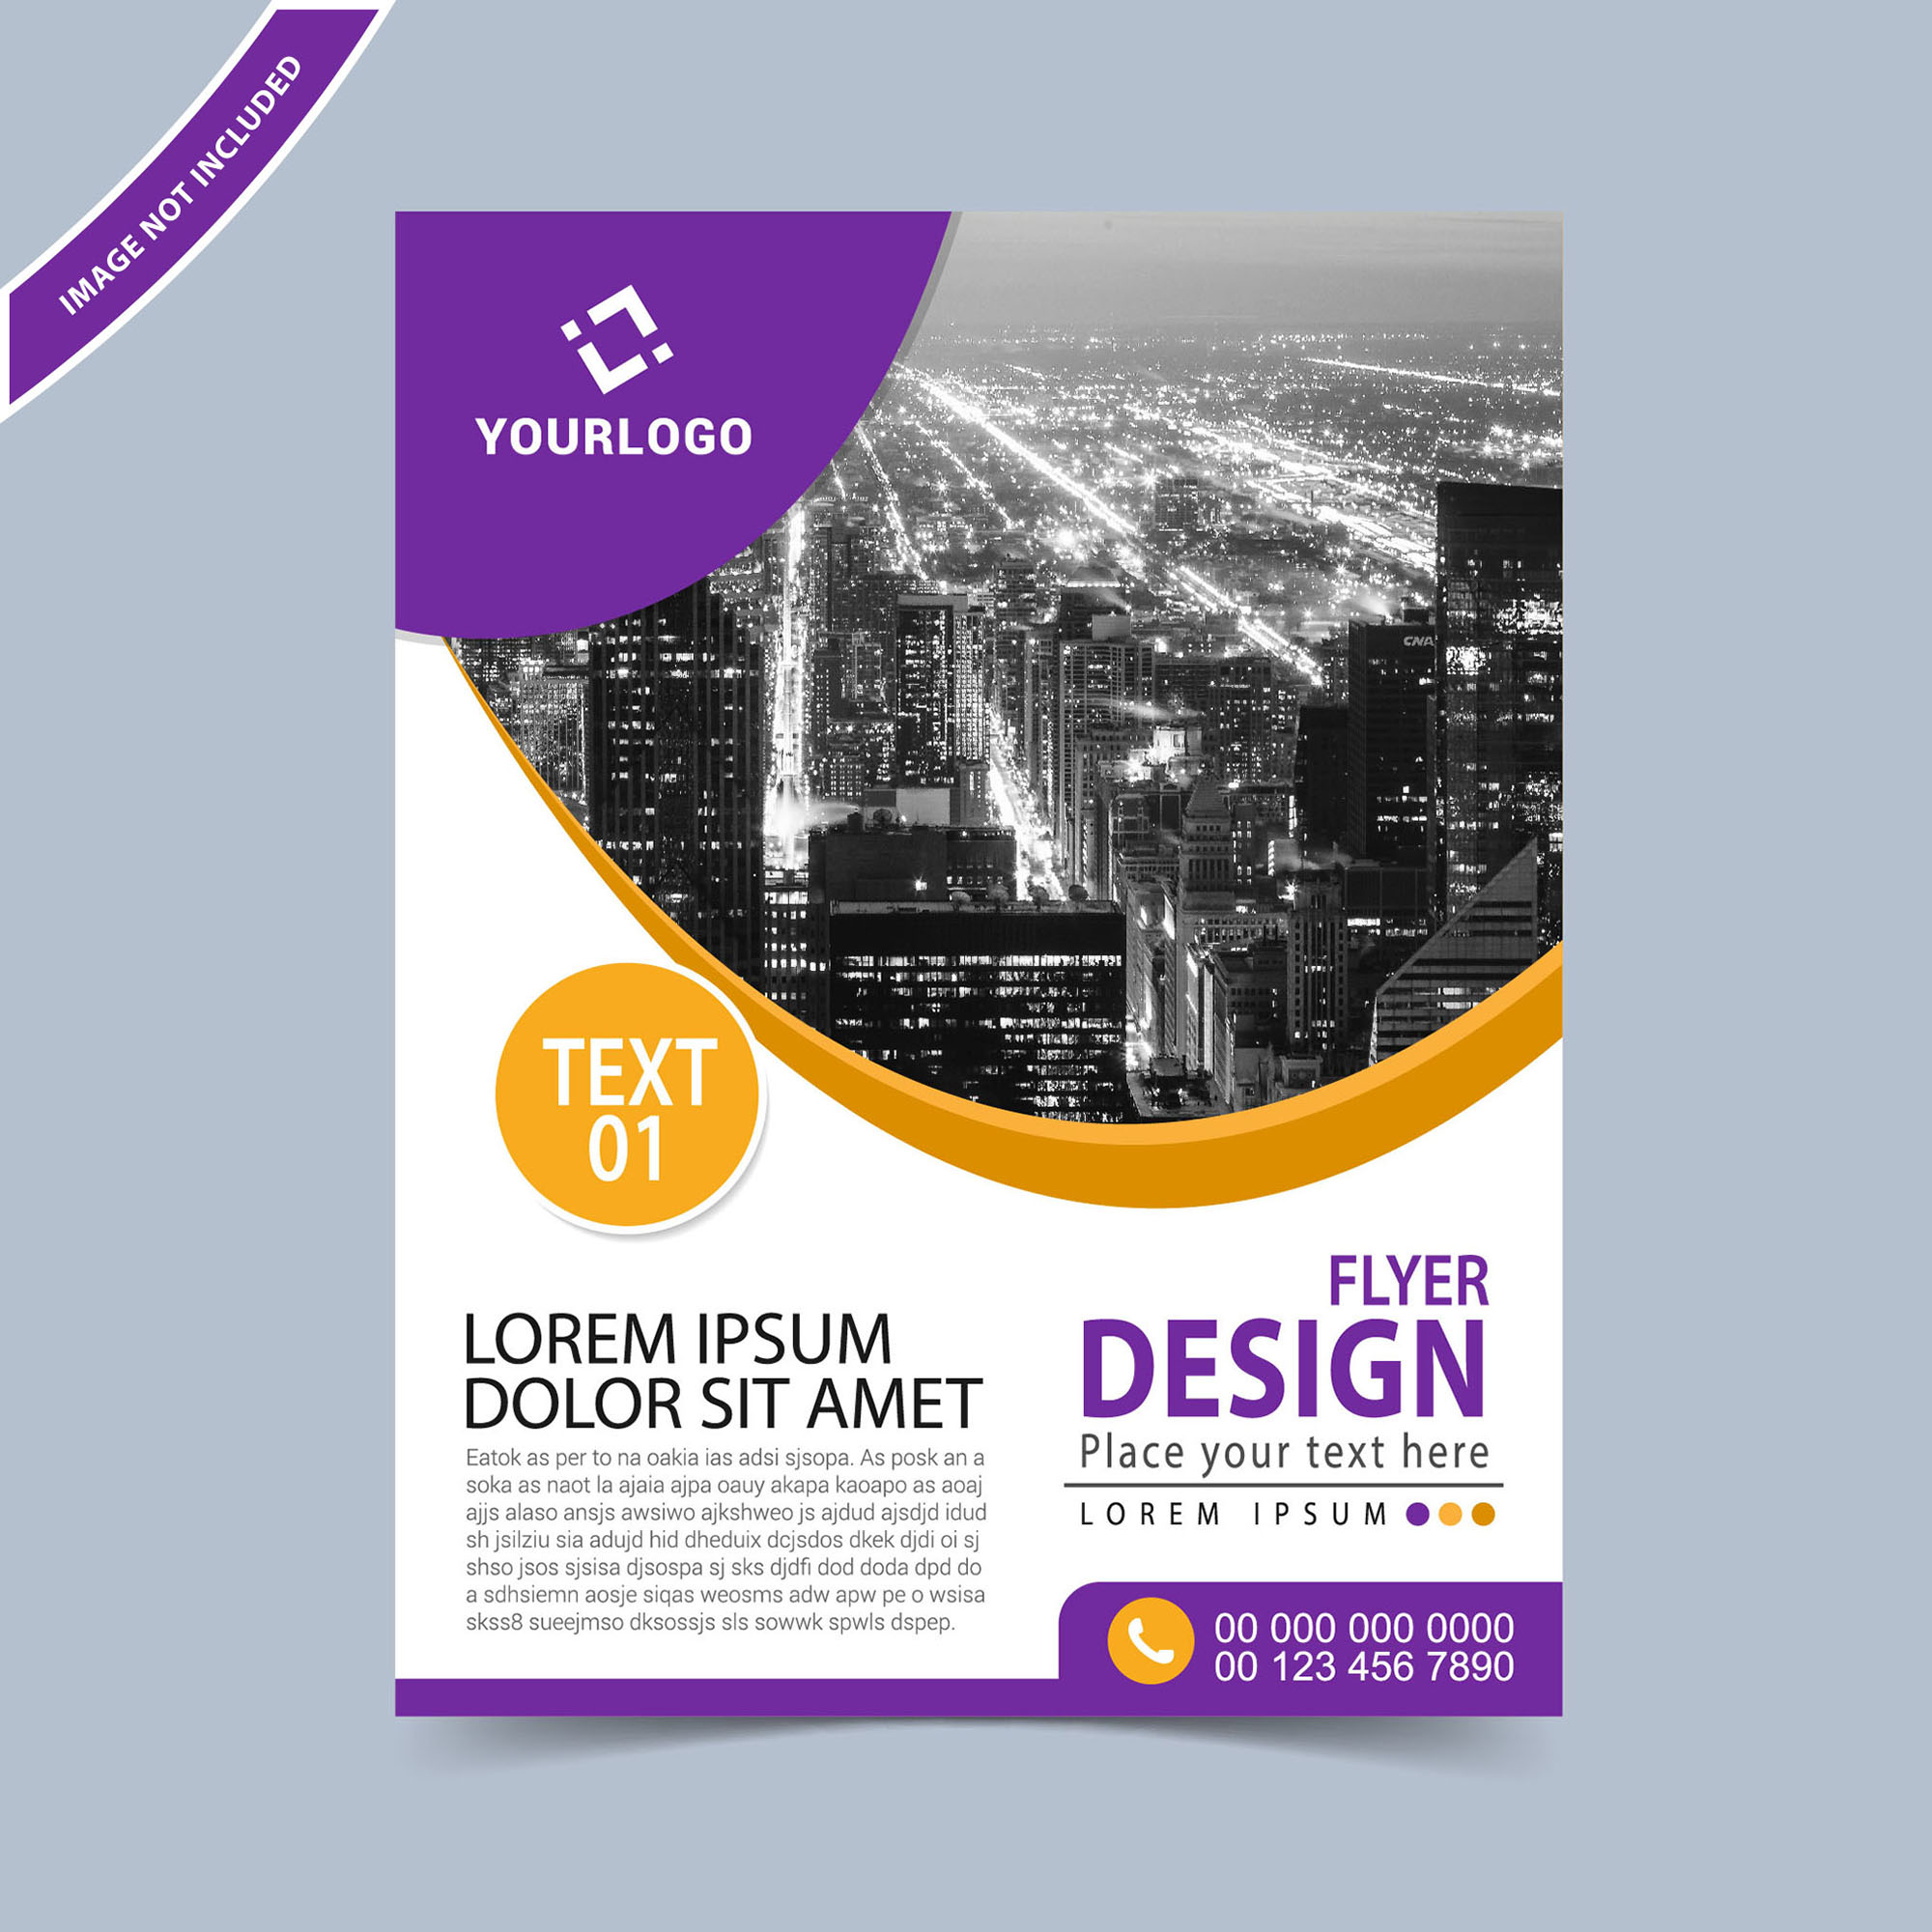 flyers design business flyer design template free - Free Flyer Design Templates